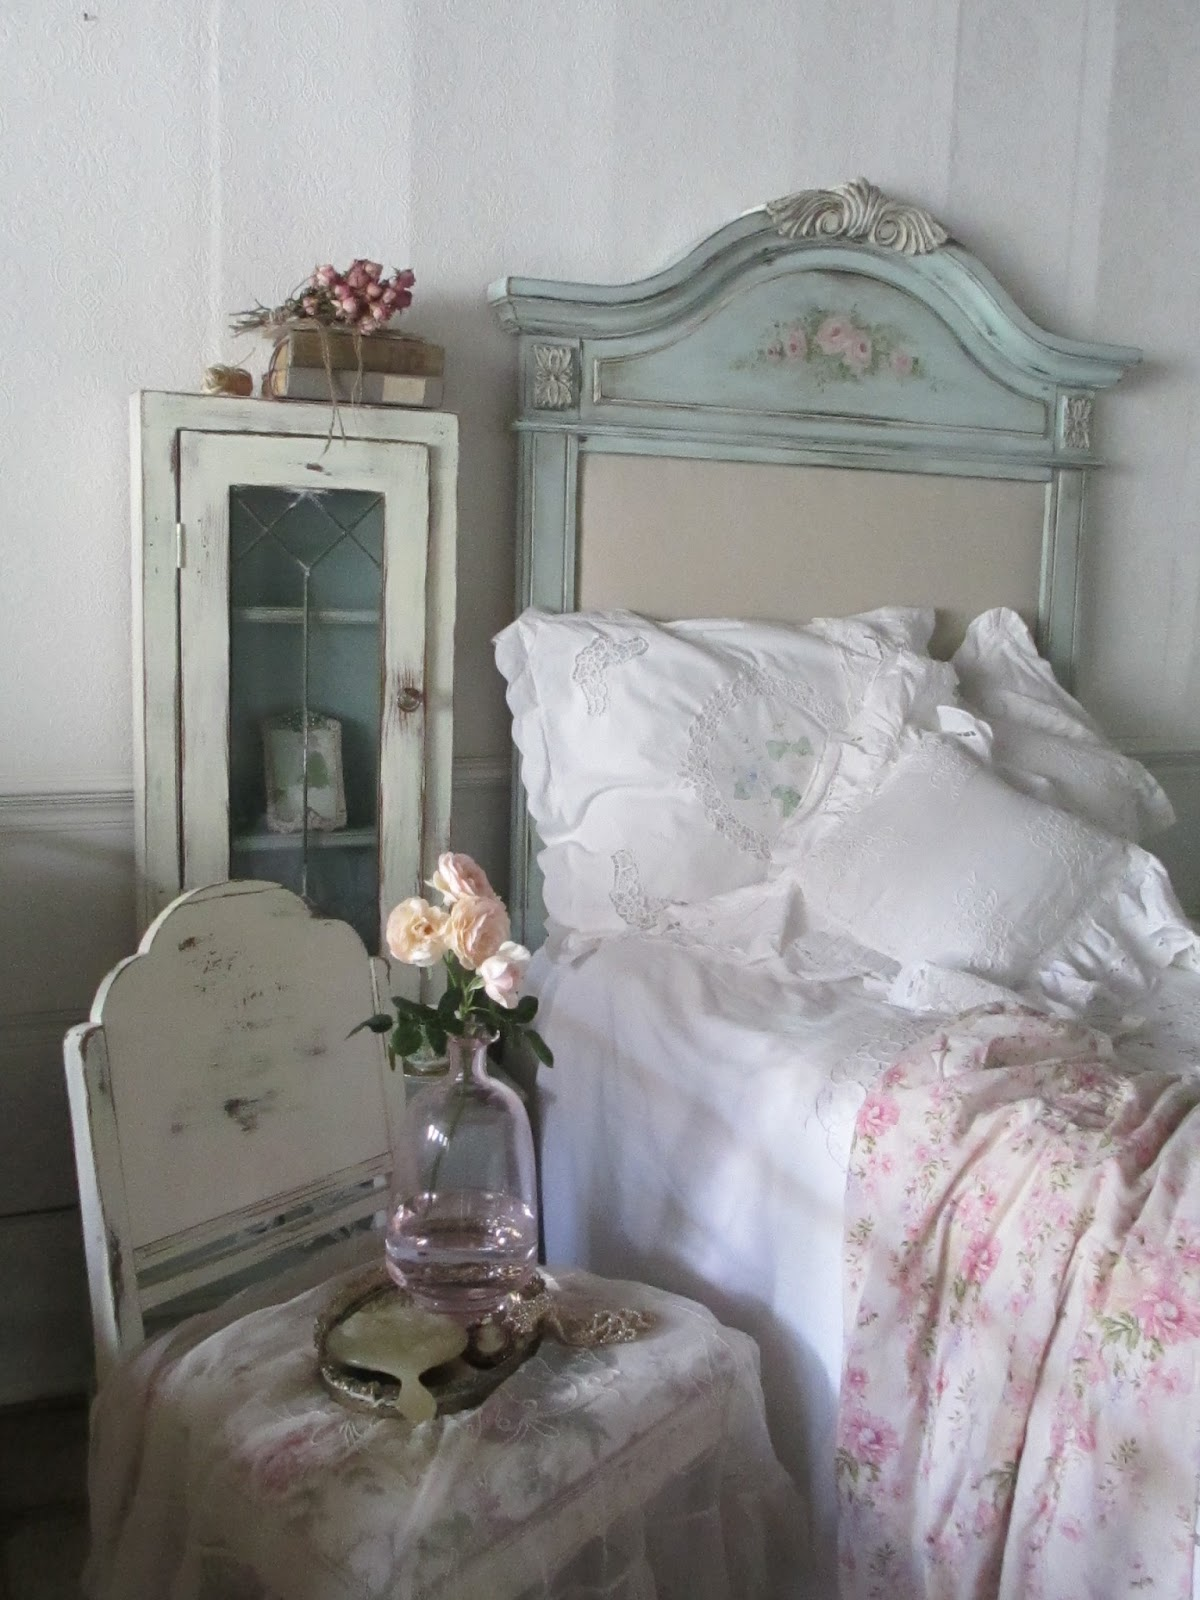 my place 4 tea trash to treasure headboard. Black Bedroom Furniture Sets. Home Design Ideas